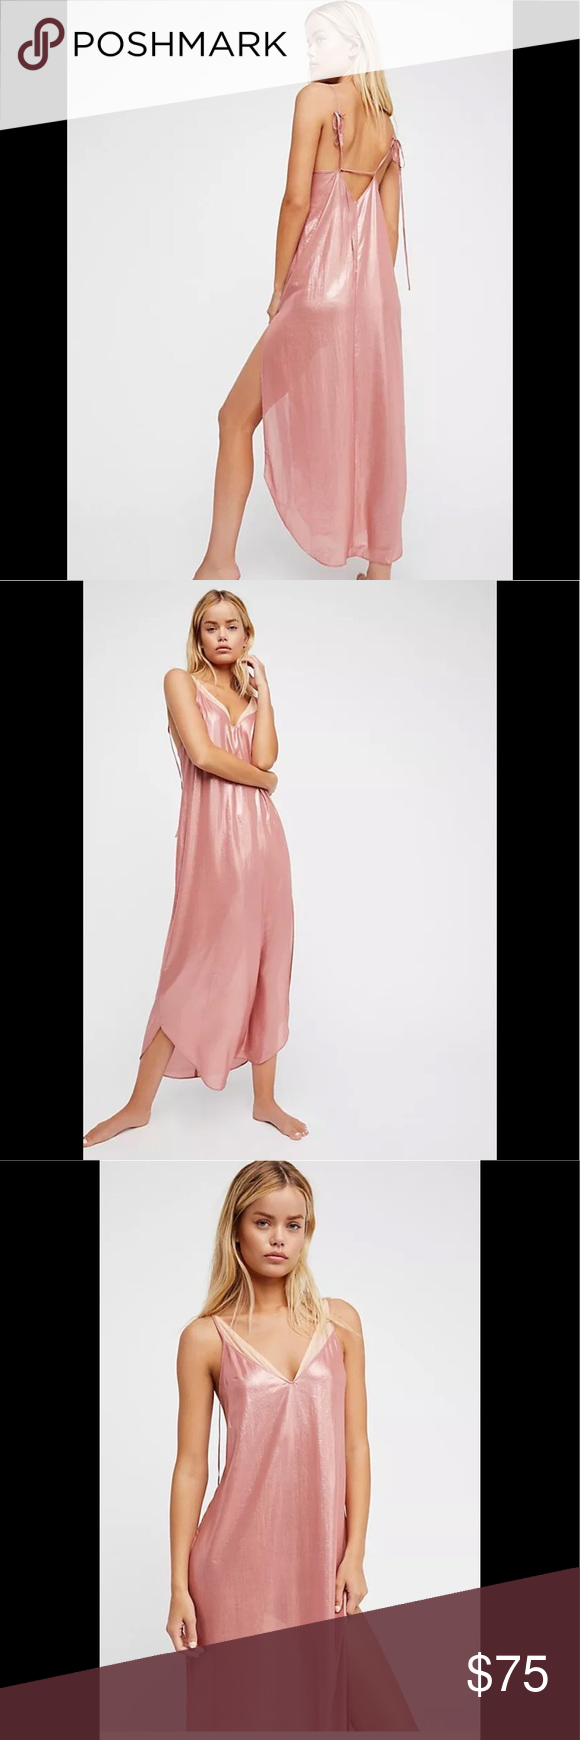 93289407d796 Free People Anytime Shine Slip Small NWT Free People Anytime Shine Slip  Small NWT Rose Gold